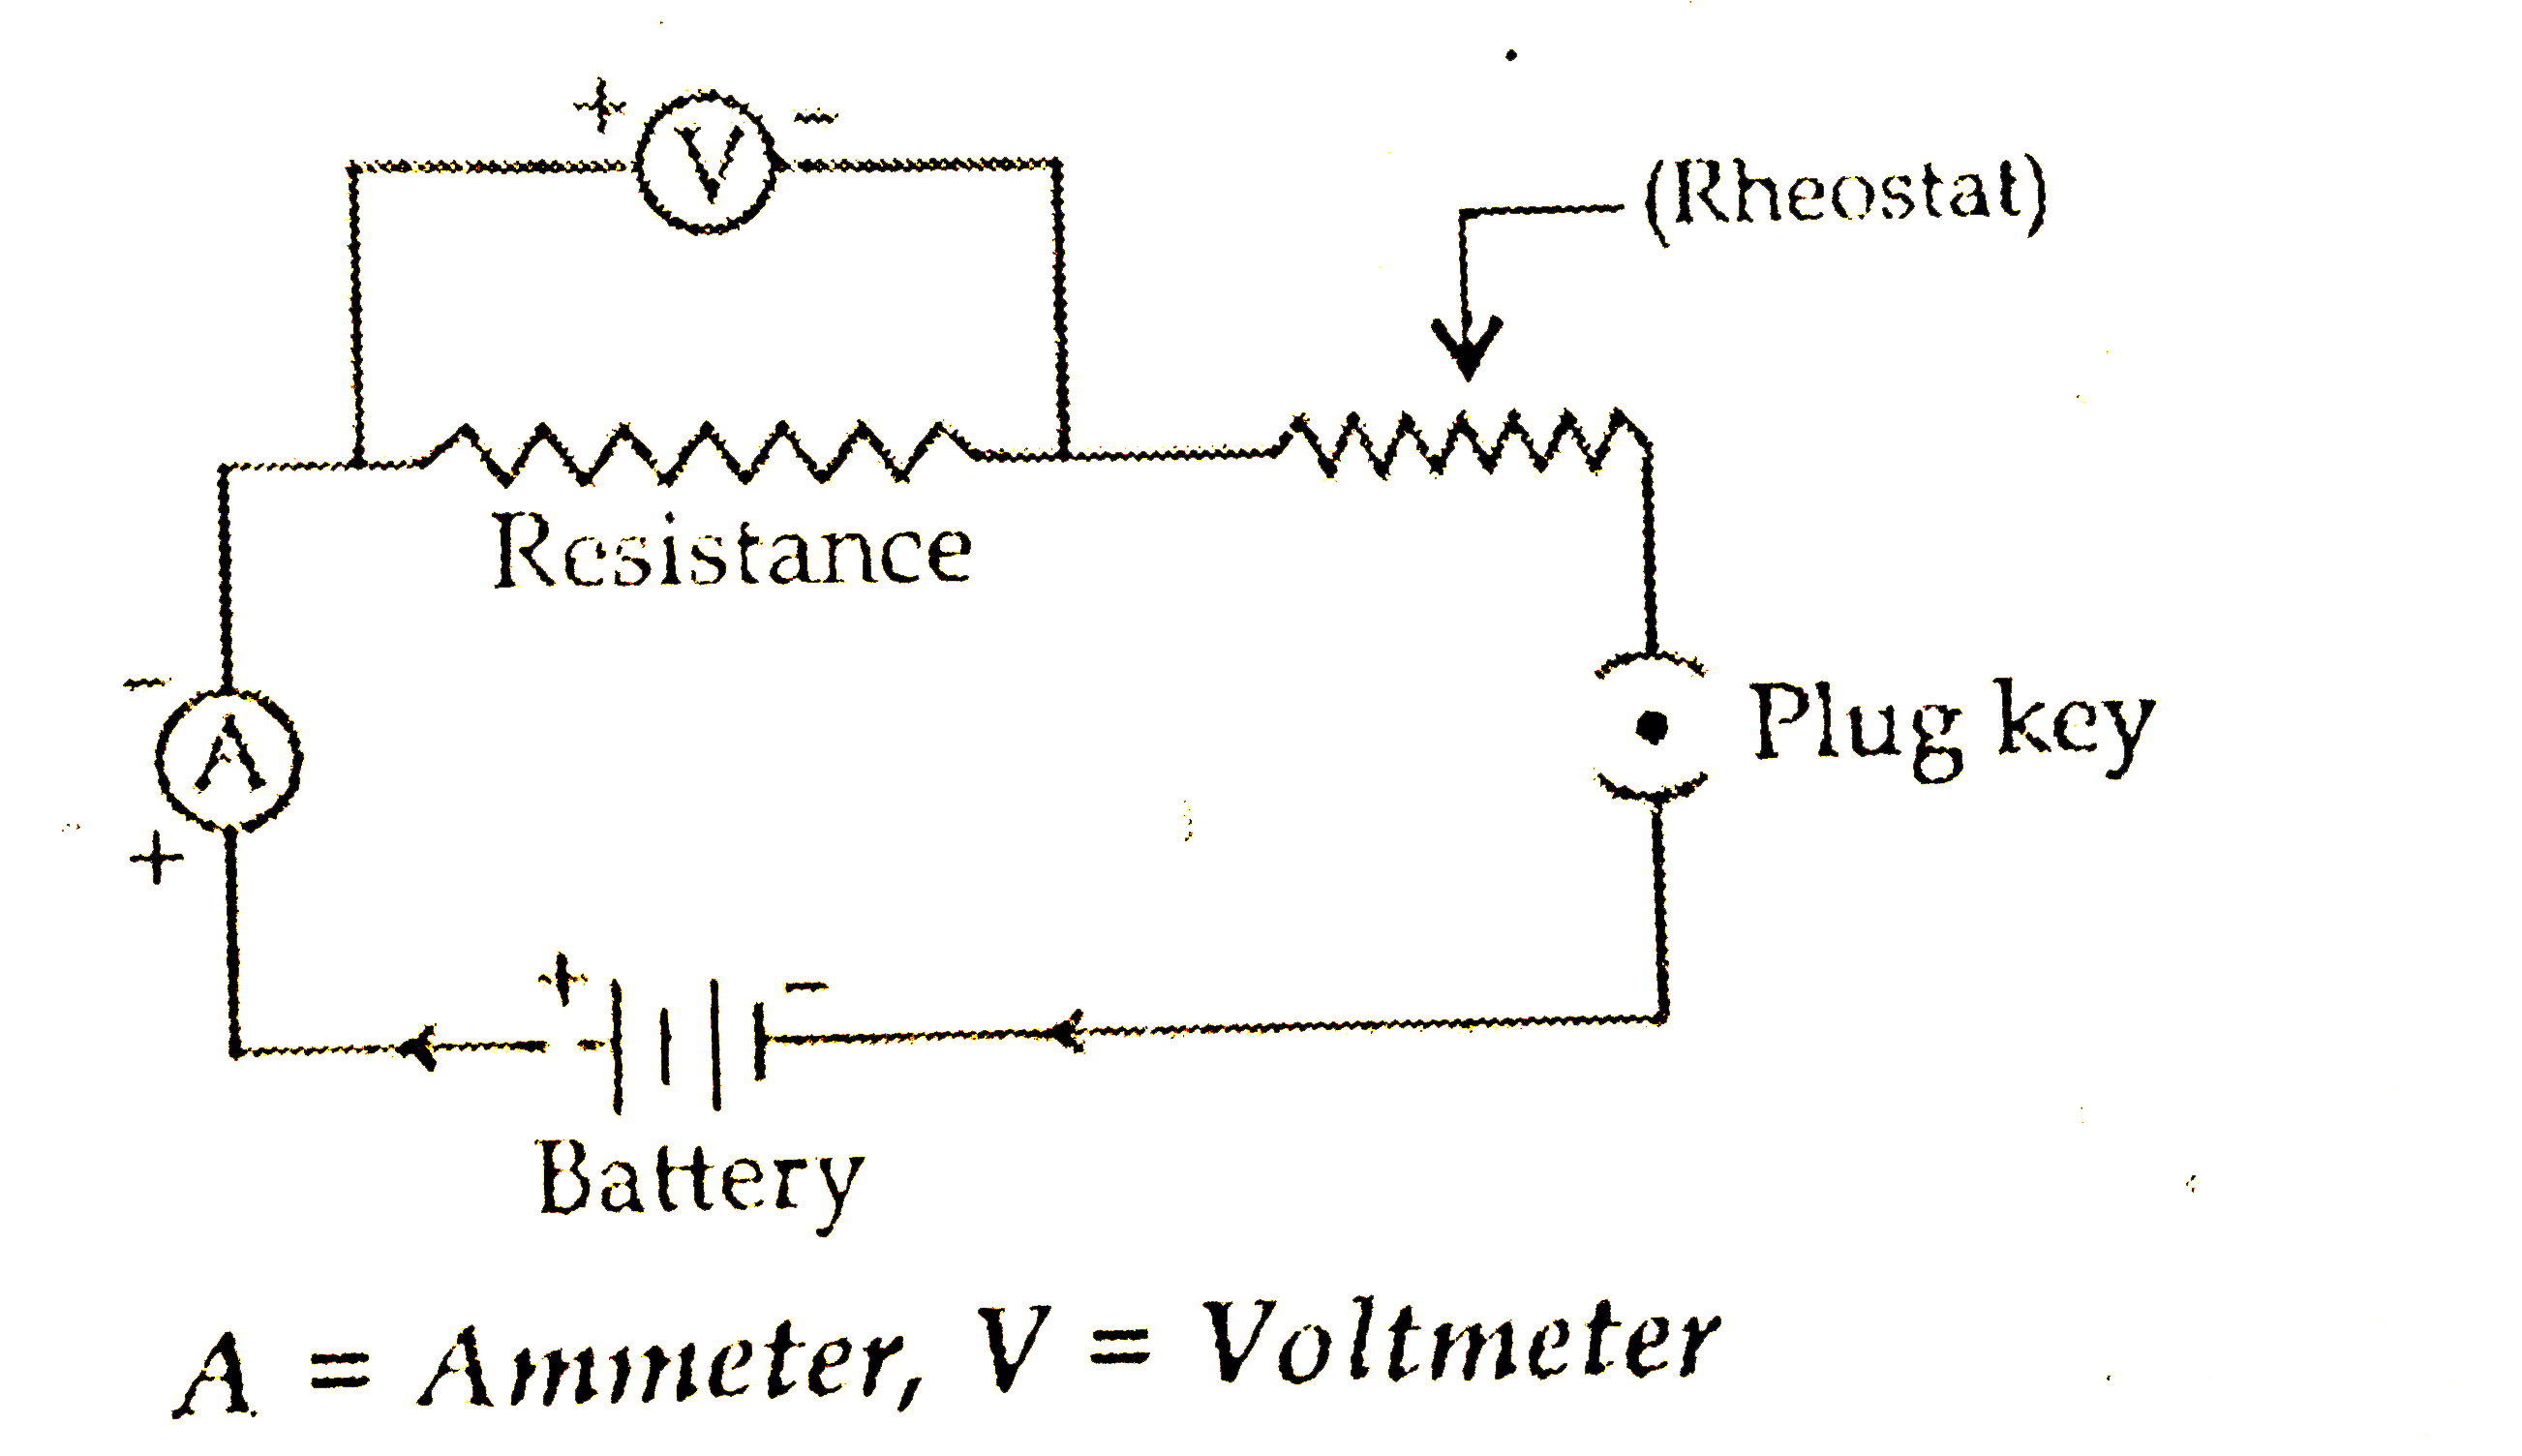 Draw a labelled circuit diagram to study the dependence of currenDoubtnut